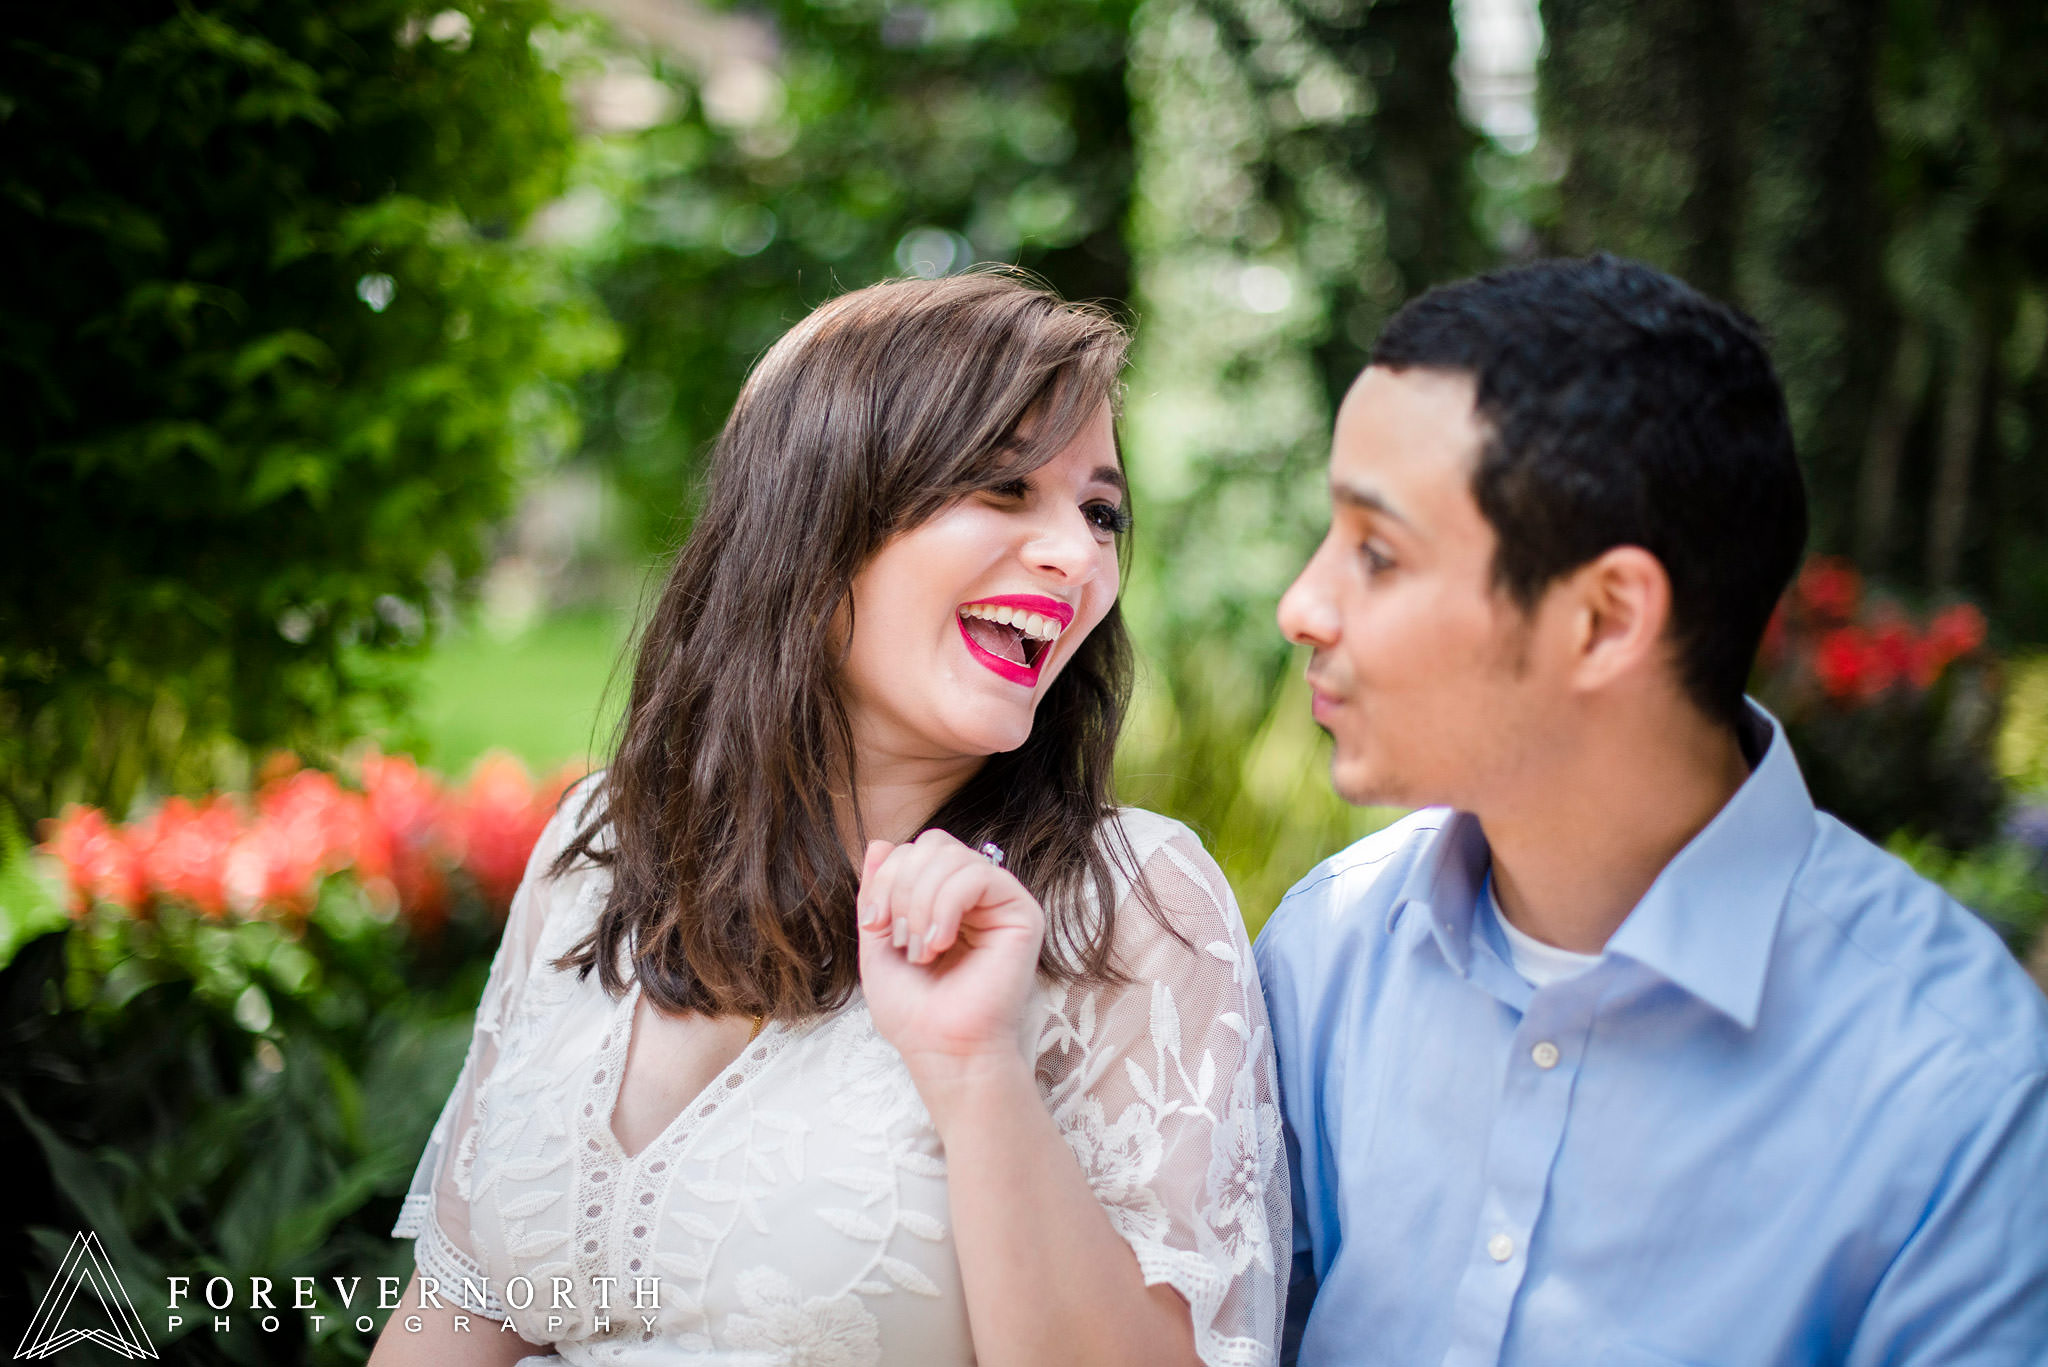 Longwood-Gardens-Engagement-Photos-09.JPG